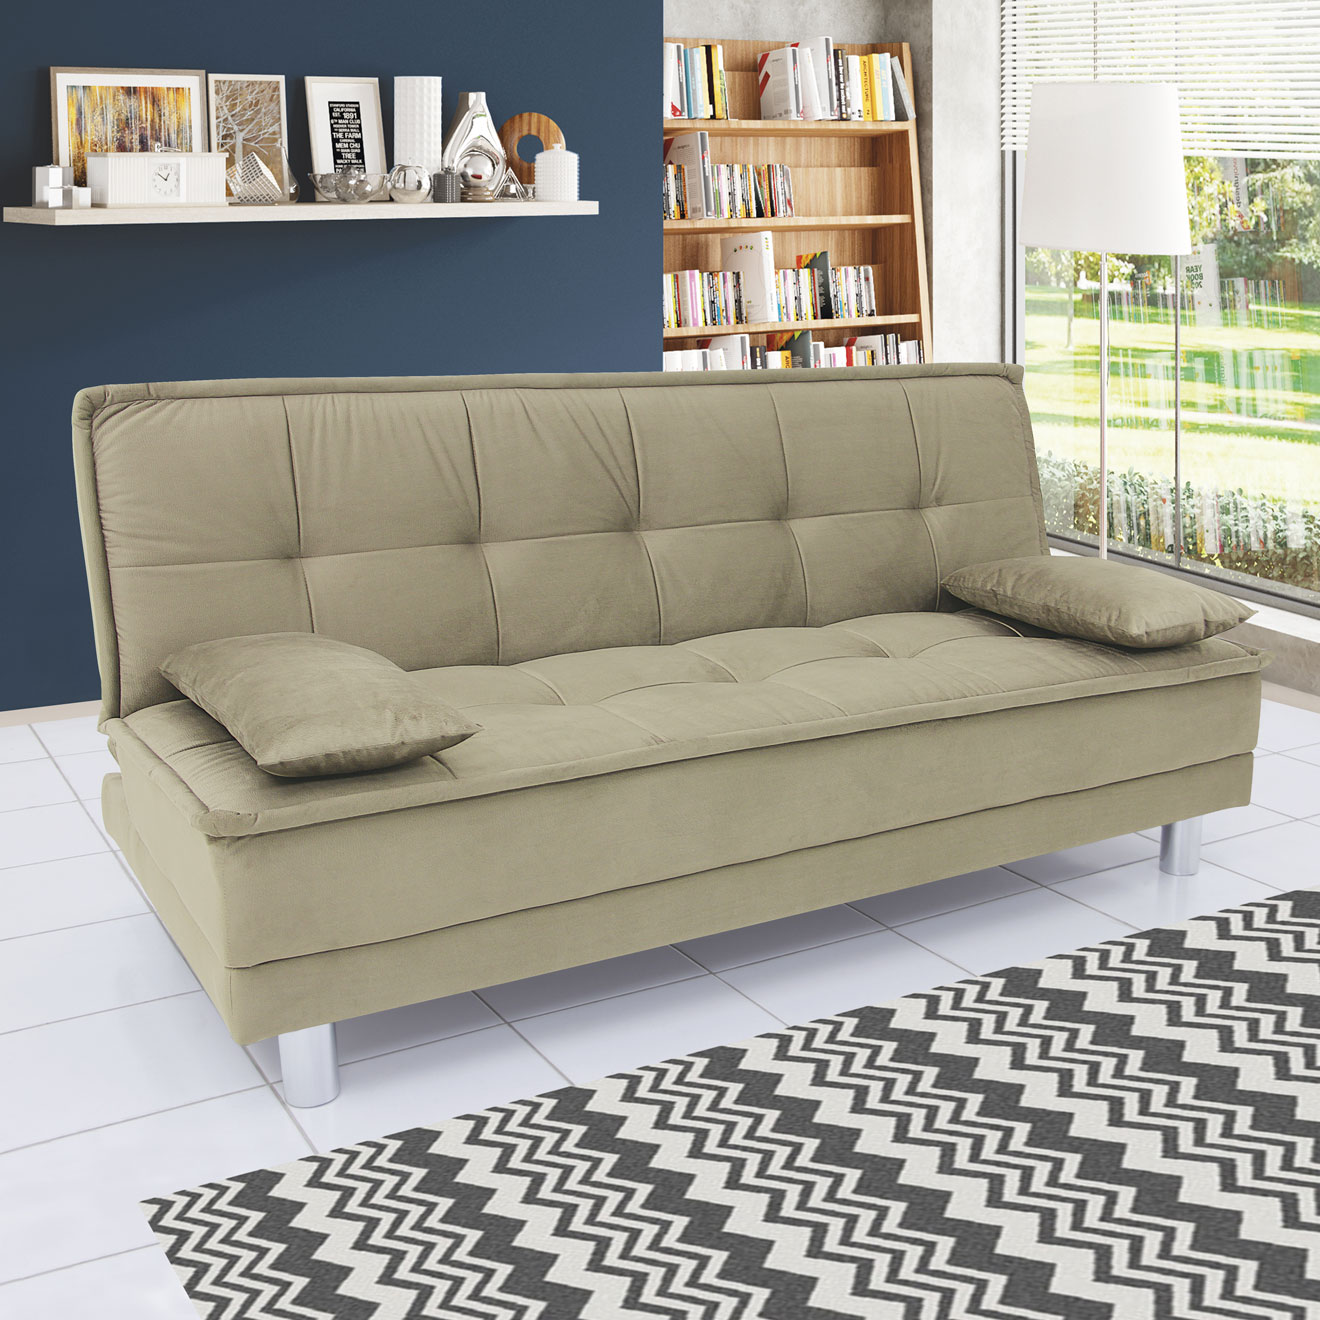 Sofa Linoforte D33 Sofá-cama Linoforte New Nancy - Colombo